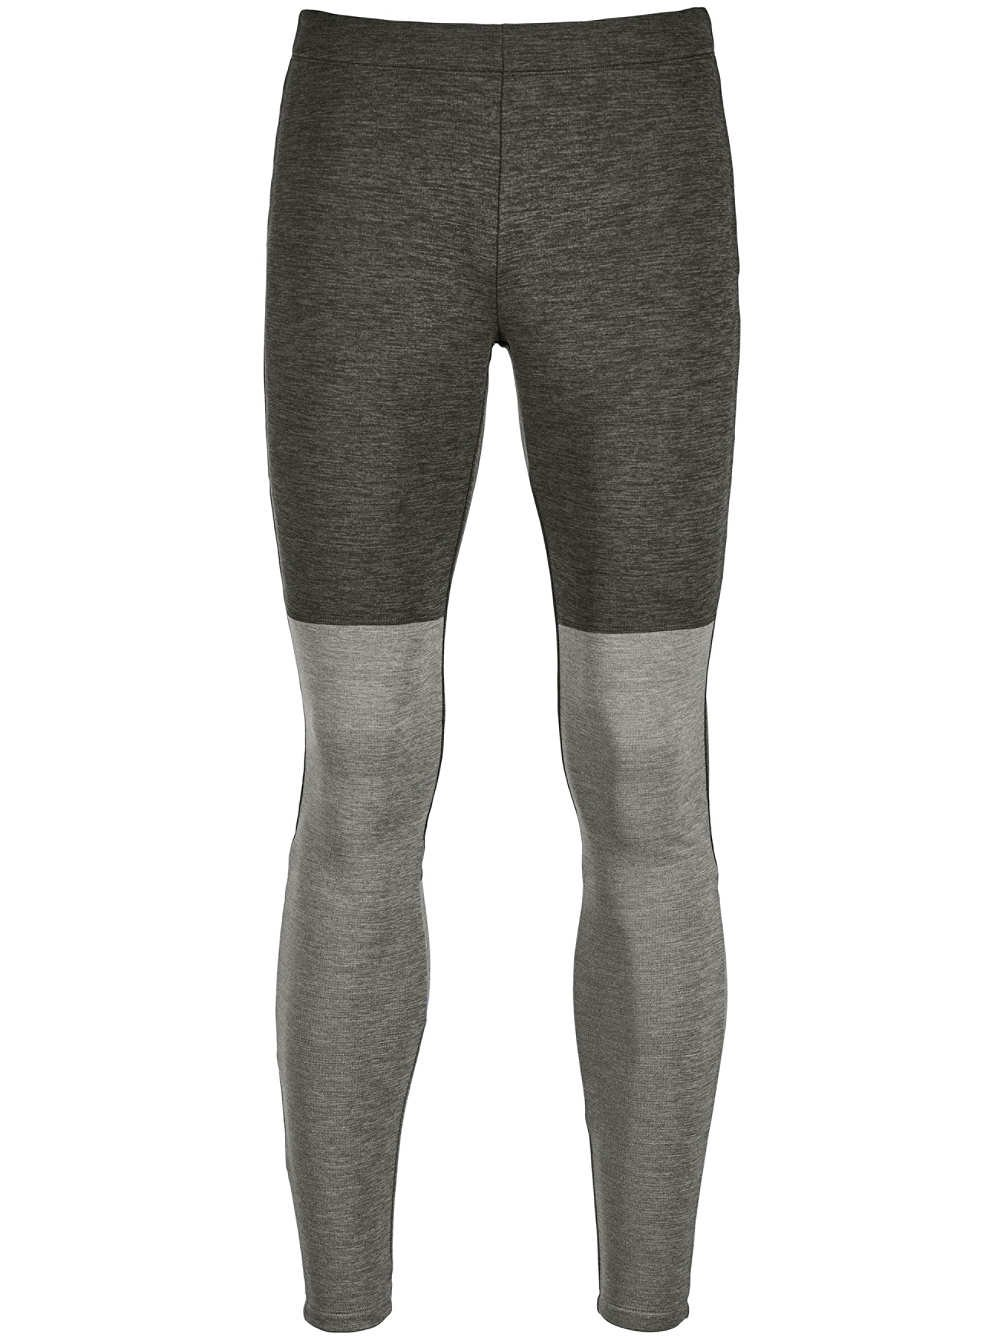 Ortovox Herren Fleece Light Tights